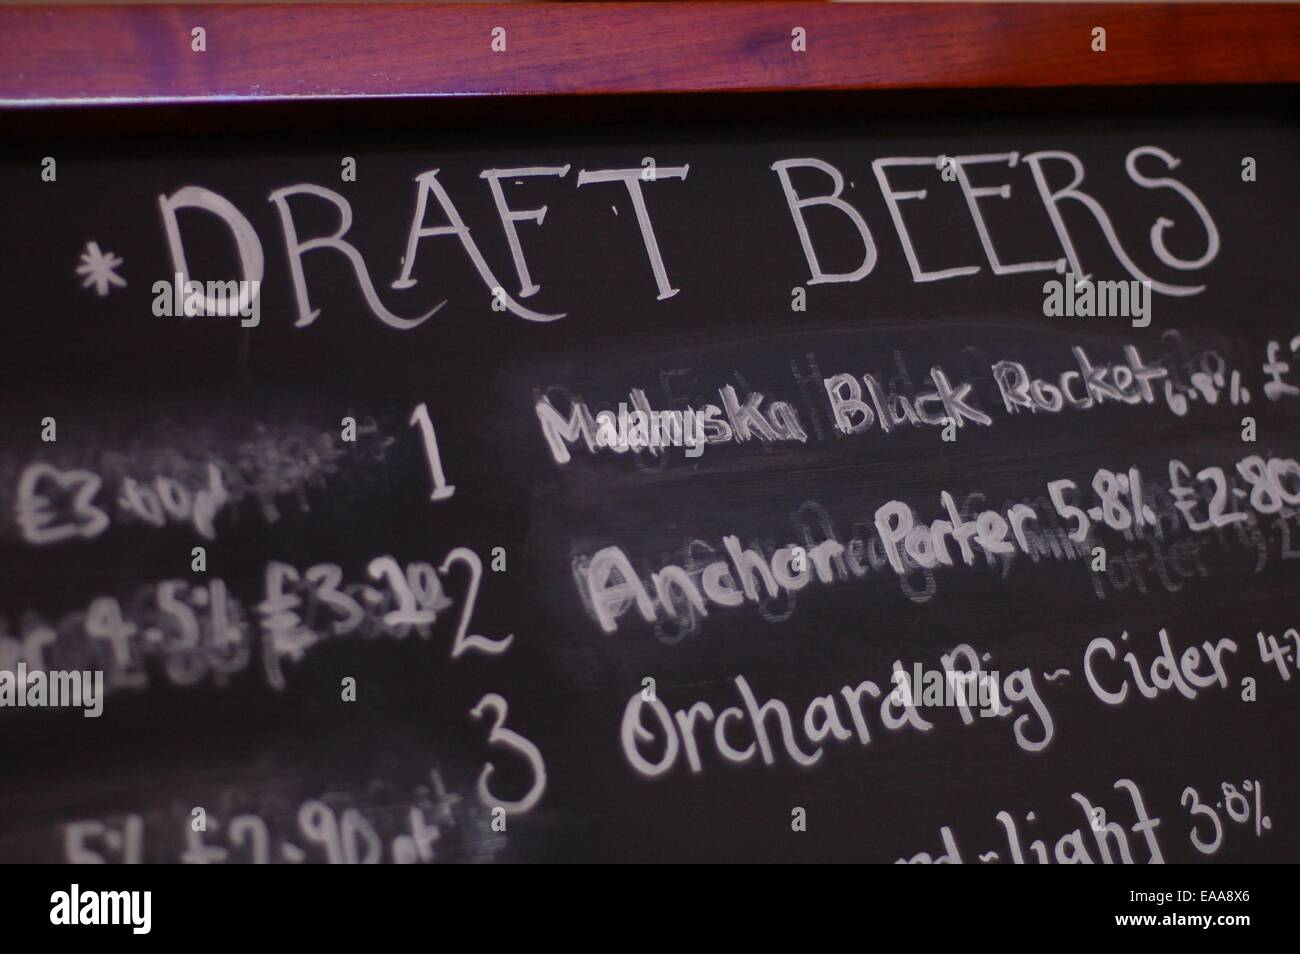 Chalkboard advertising draft beers in a pub - Stock Image